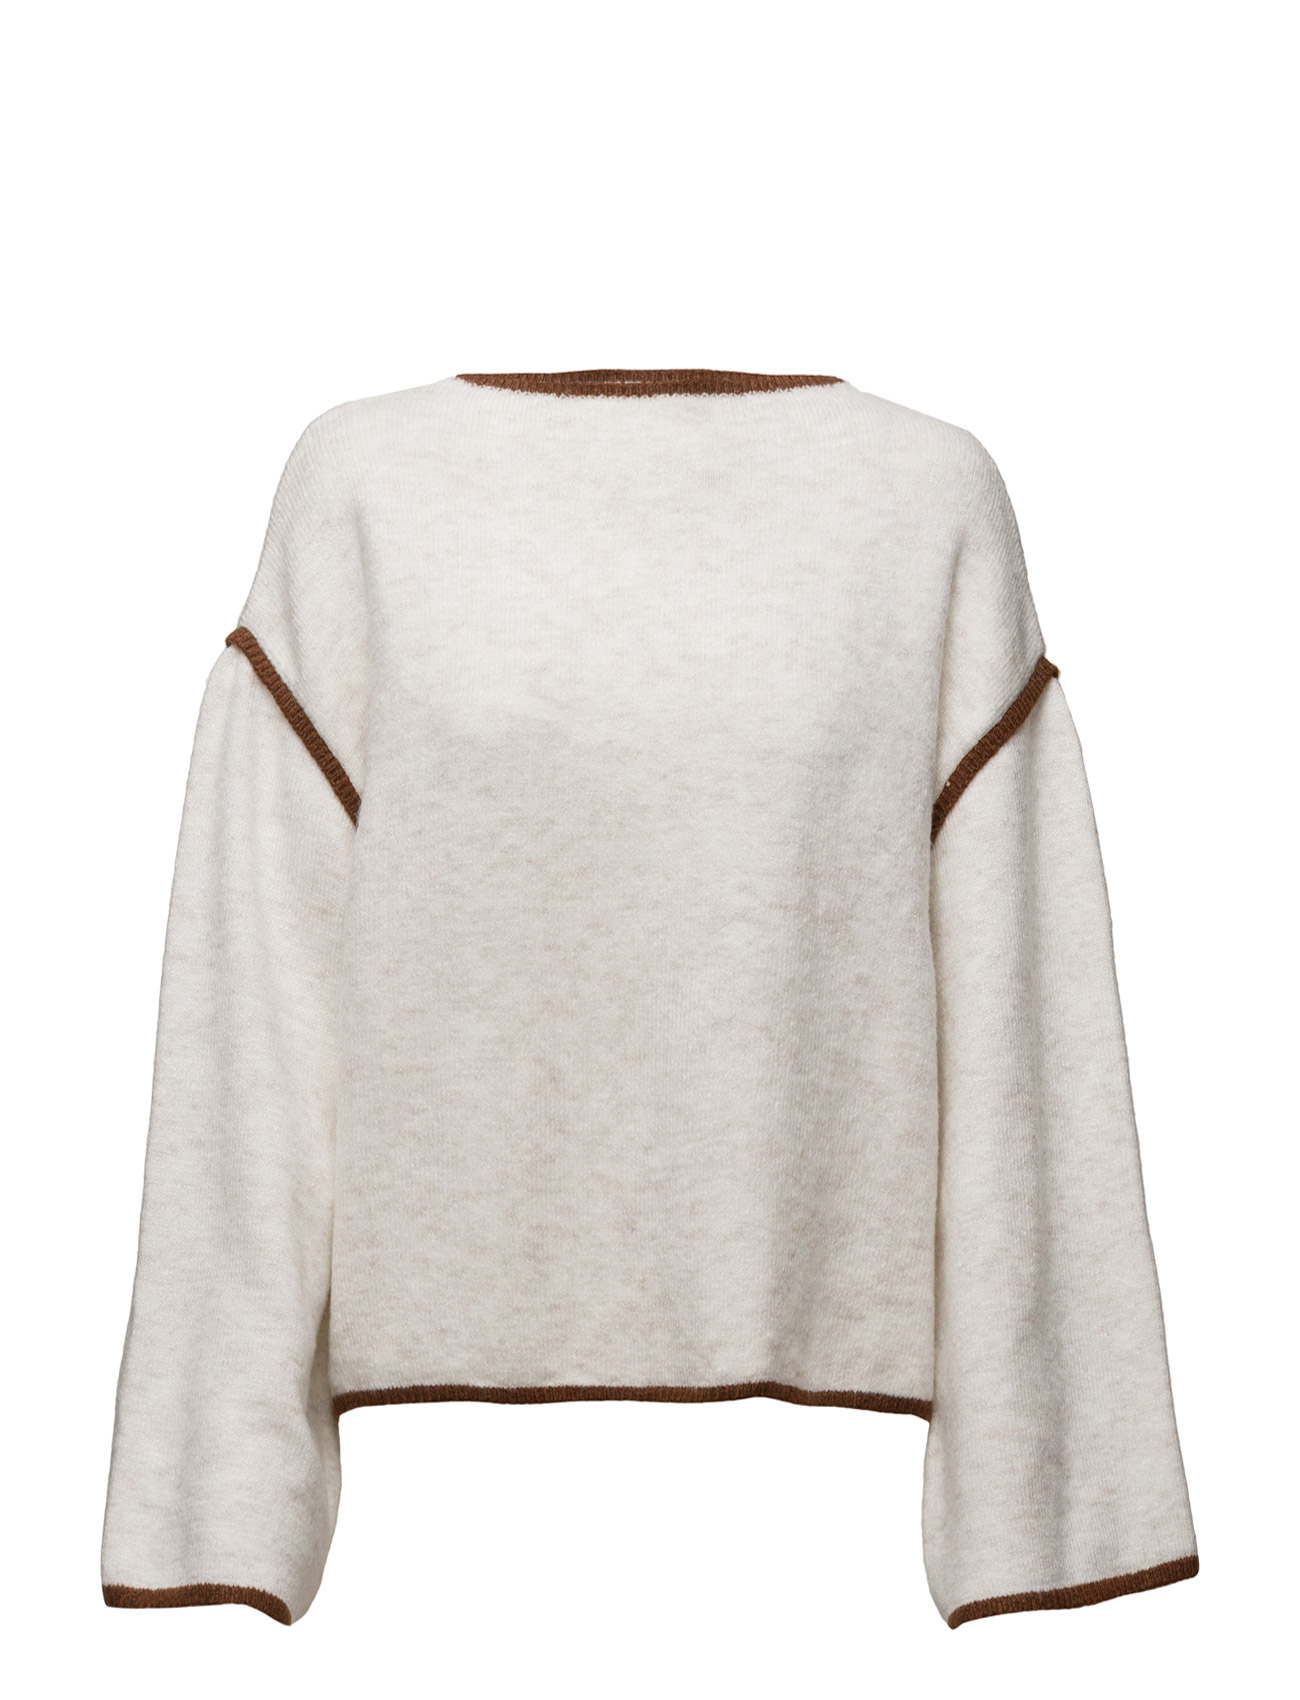 Contrast Trim Sweater Mango Sweatshirts til Kvinder i Light Beige